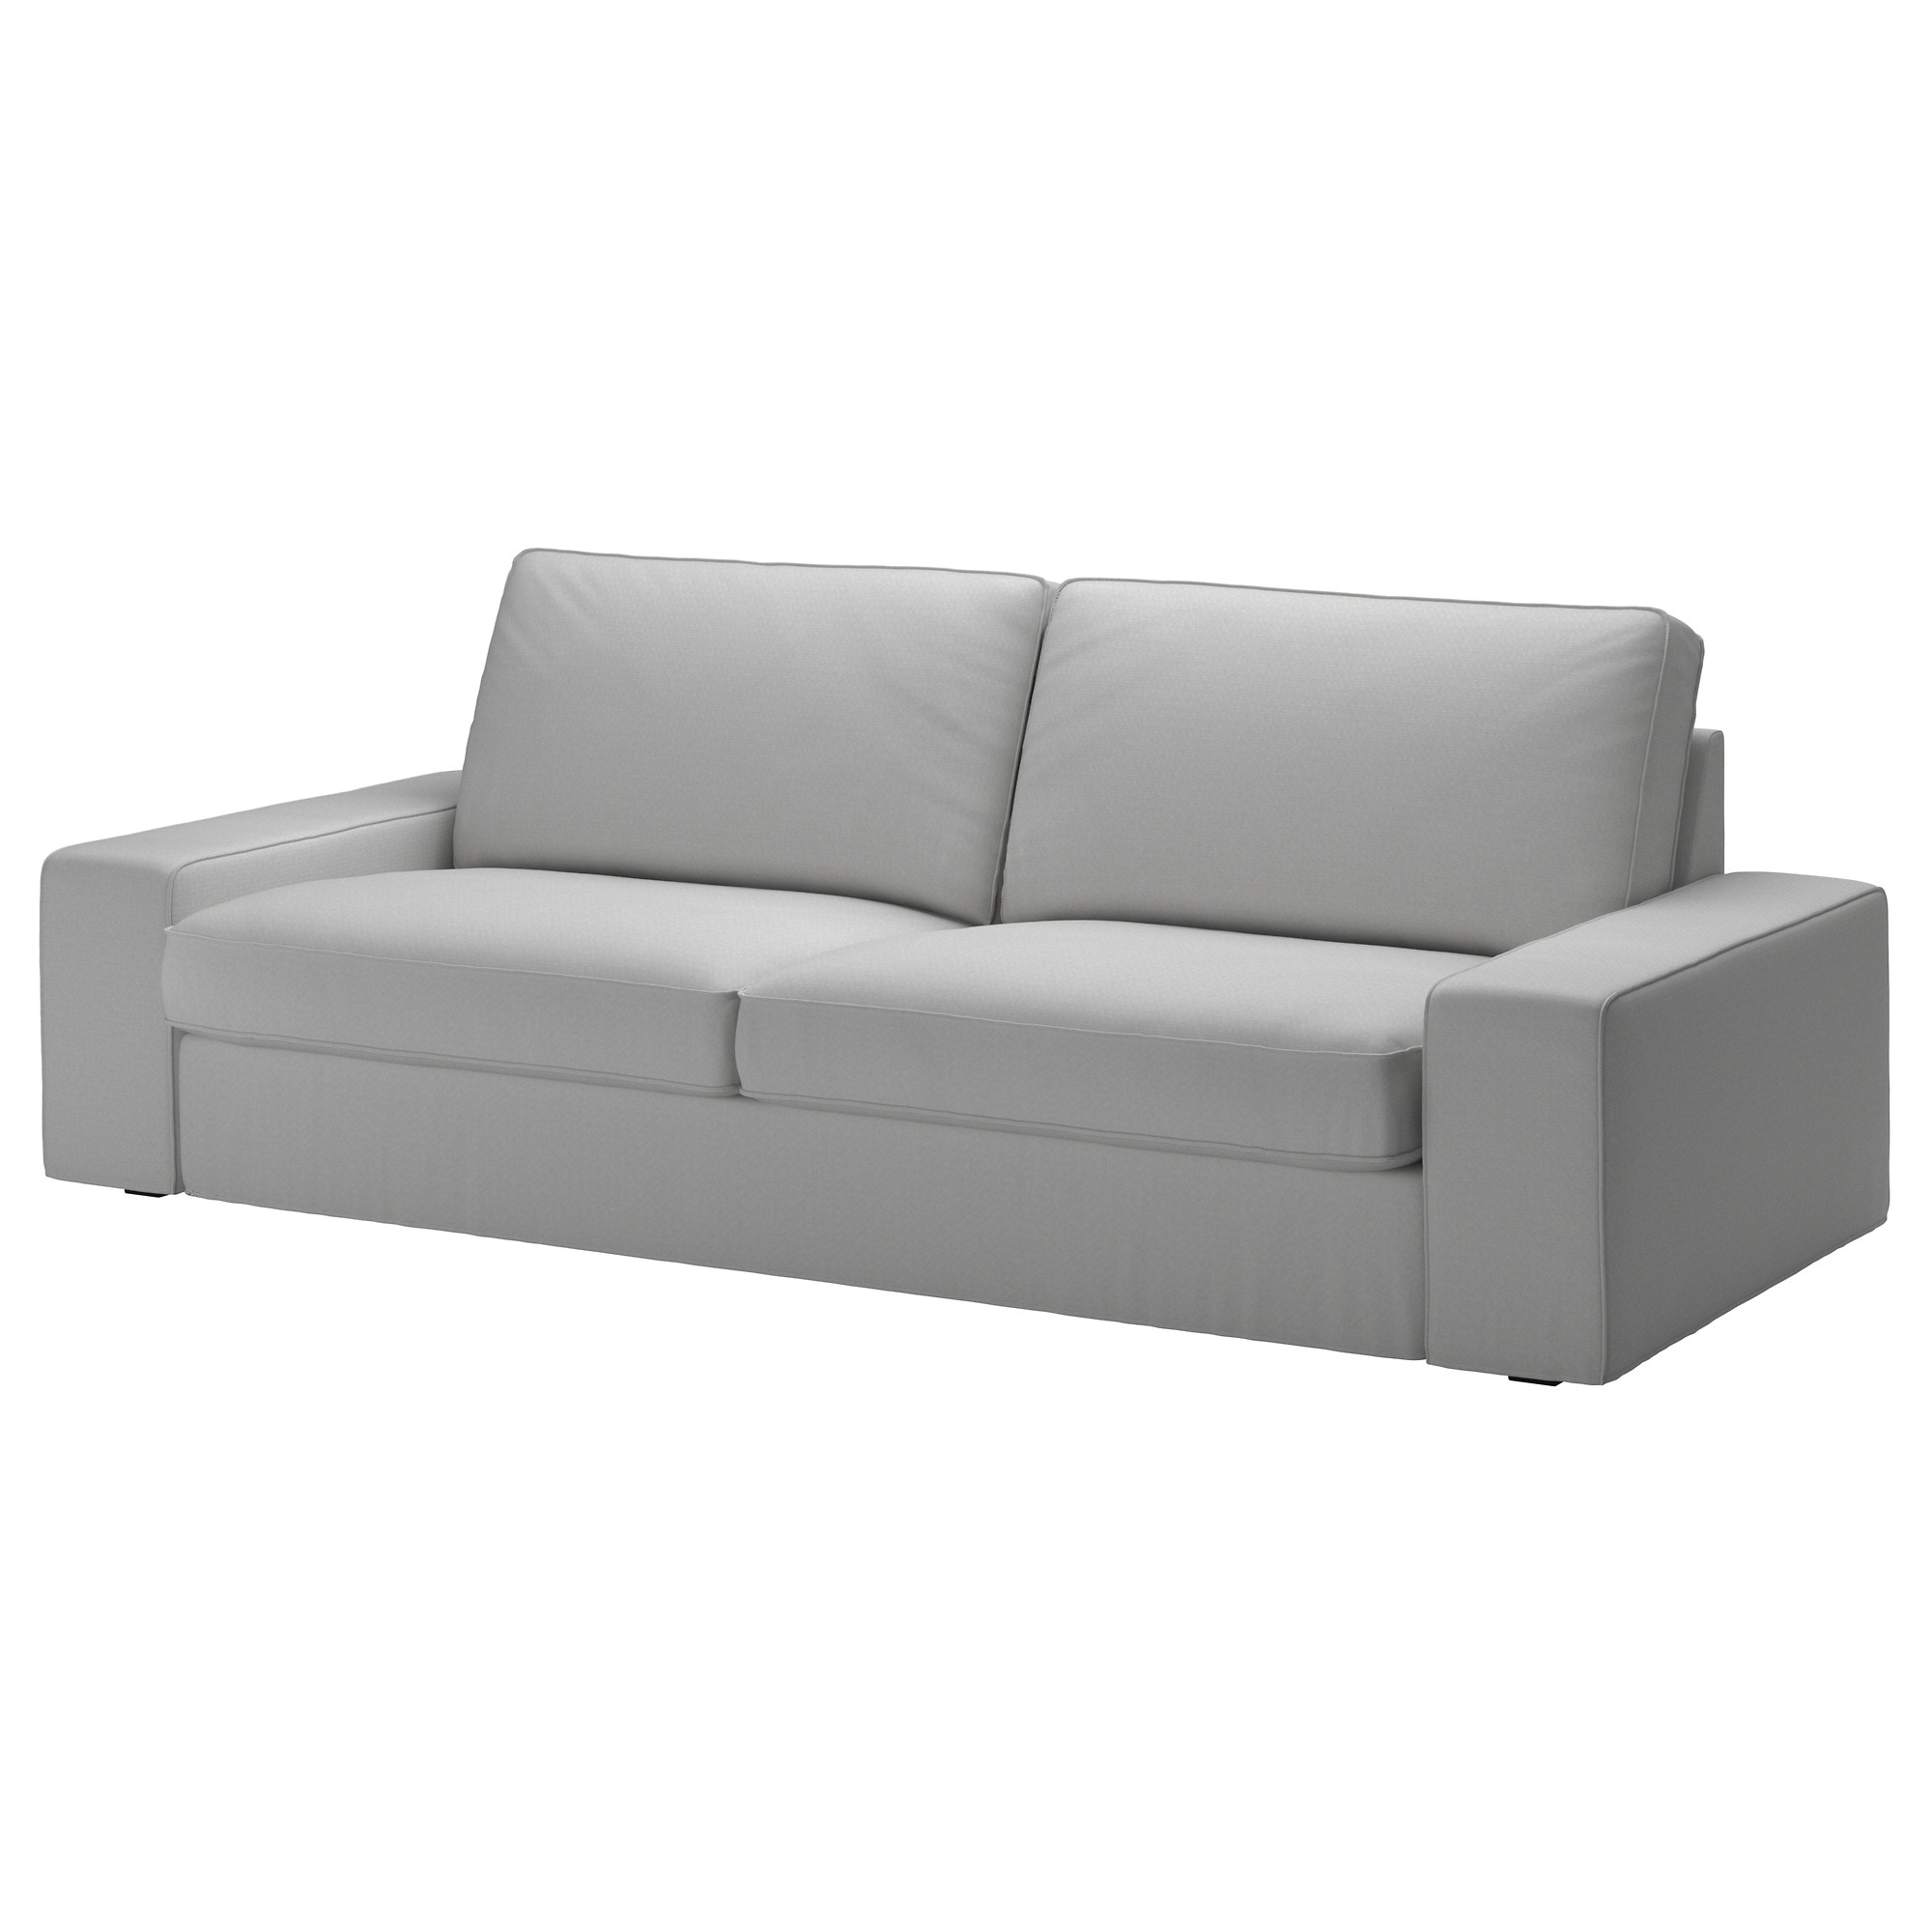 sofa ikea KIVIK Sofa   Orrsta light gray   IKEA sofa ikea